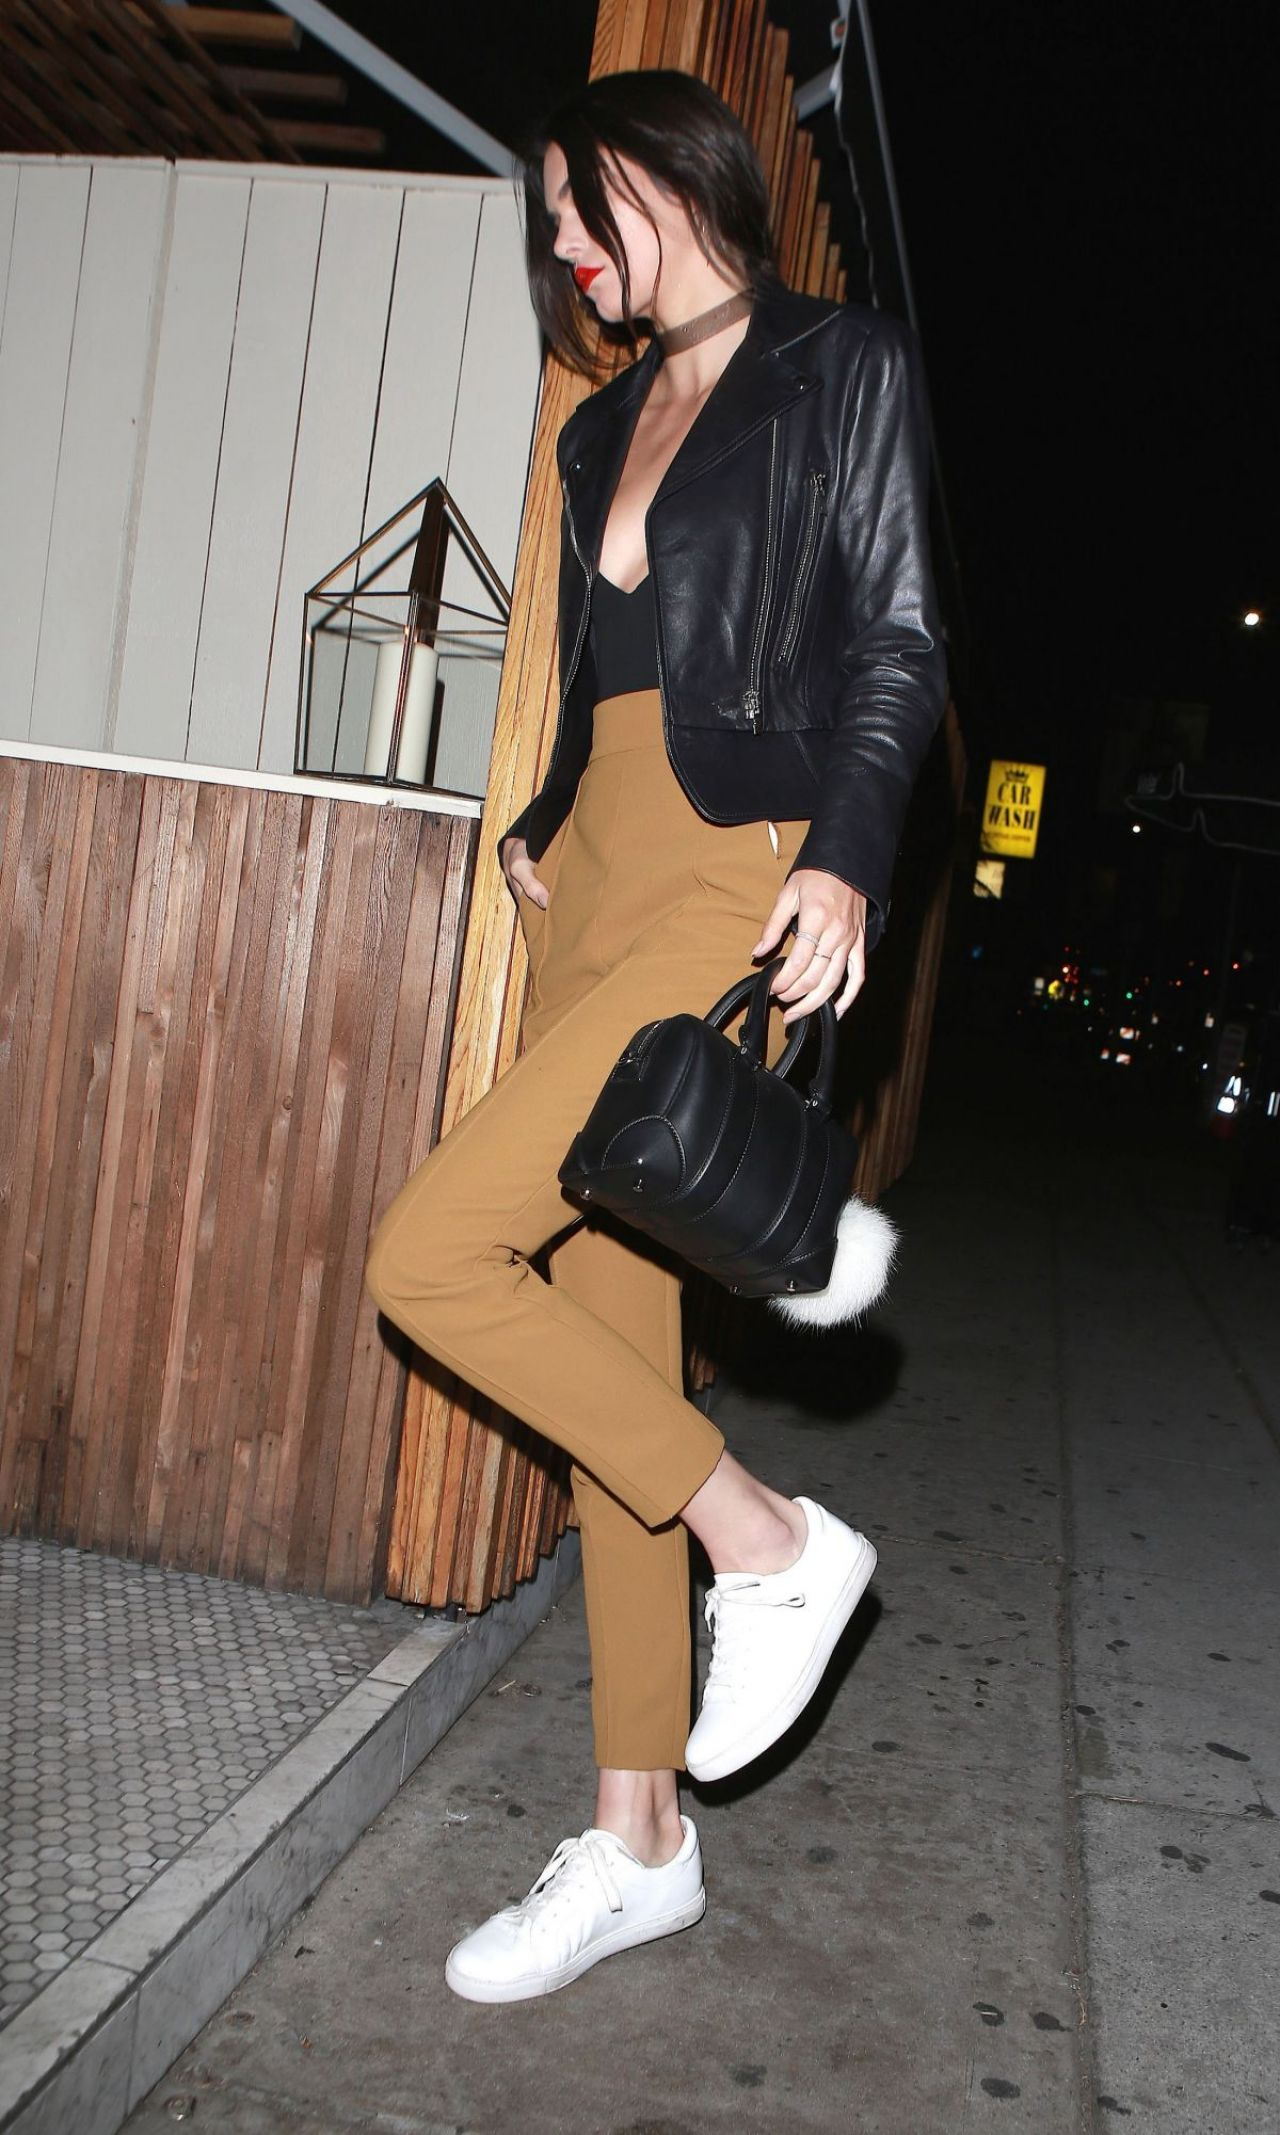 kendall-jenner-night-out-style-arriving-at-nice-guy-in-west-hollywood-january-2016-5